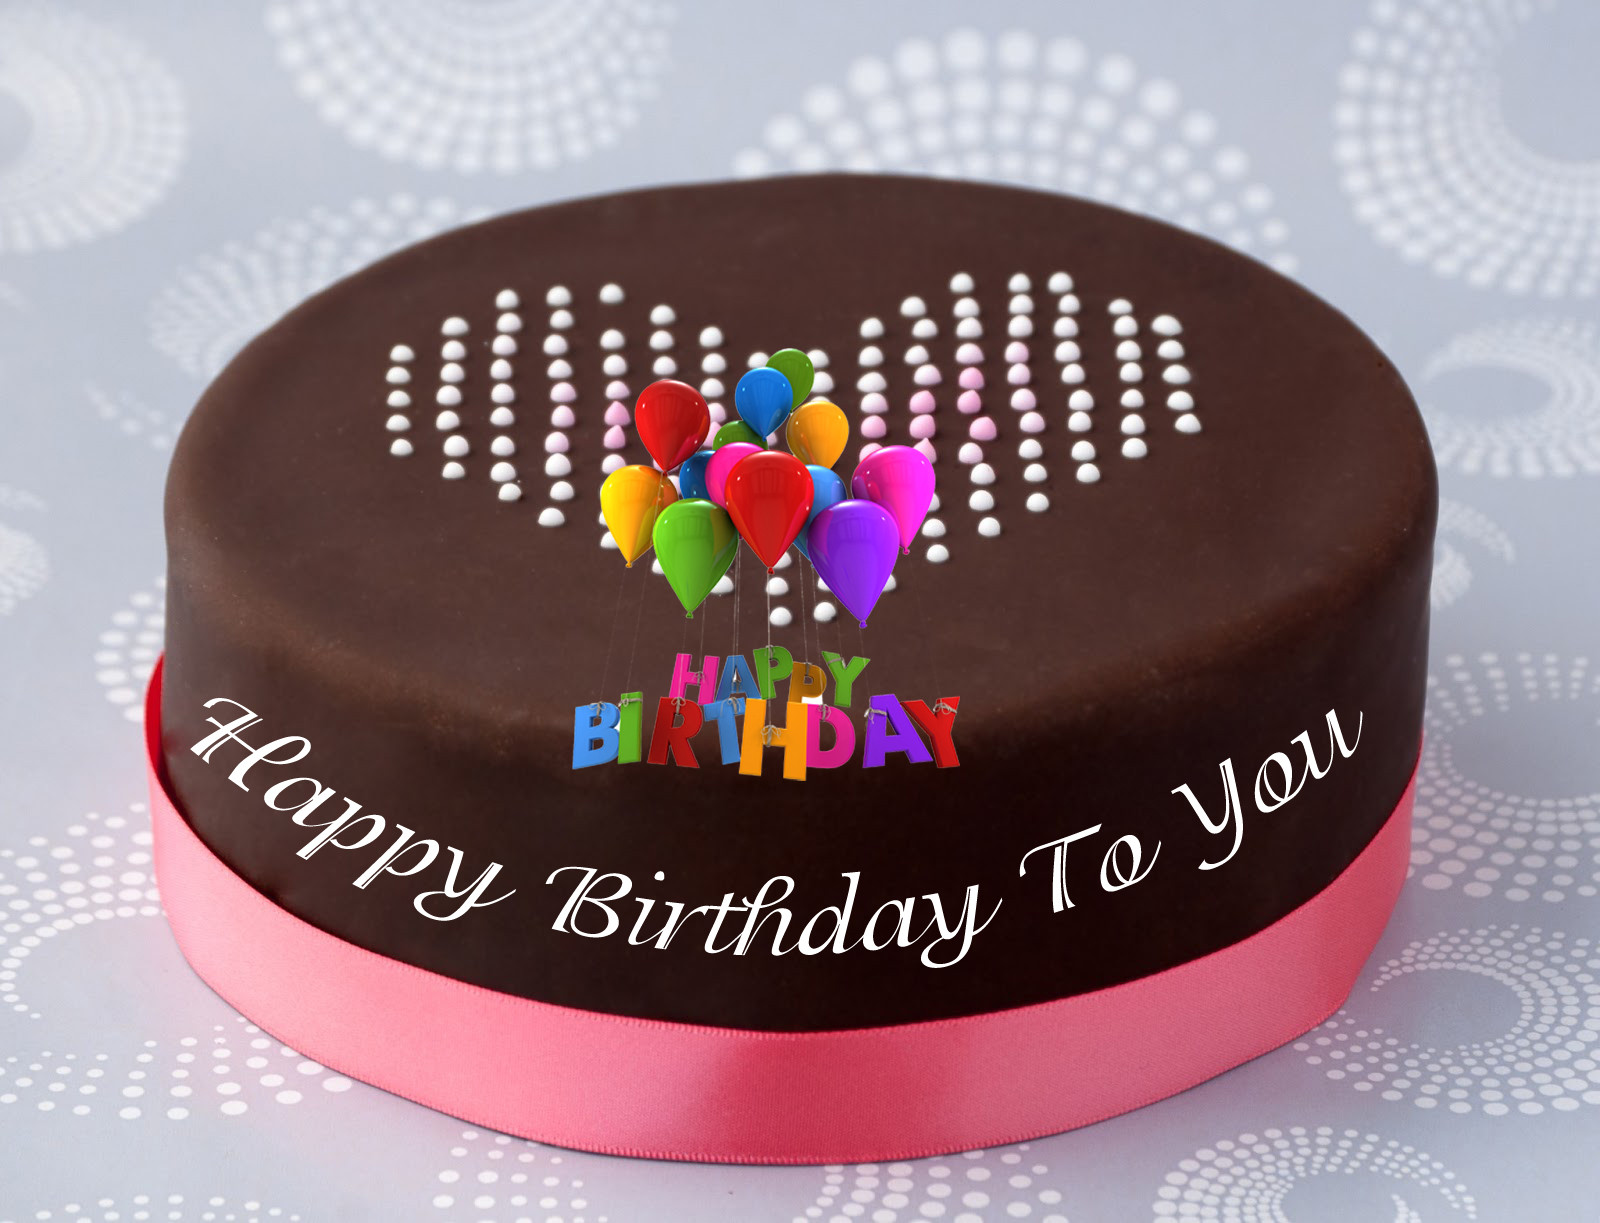 Best ideas about Birthday Wishes Cake . Save or Pin Happy Birthday Cake To You Now.